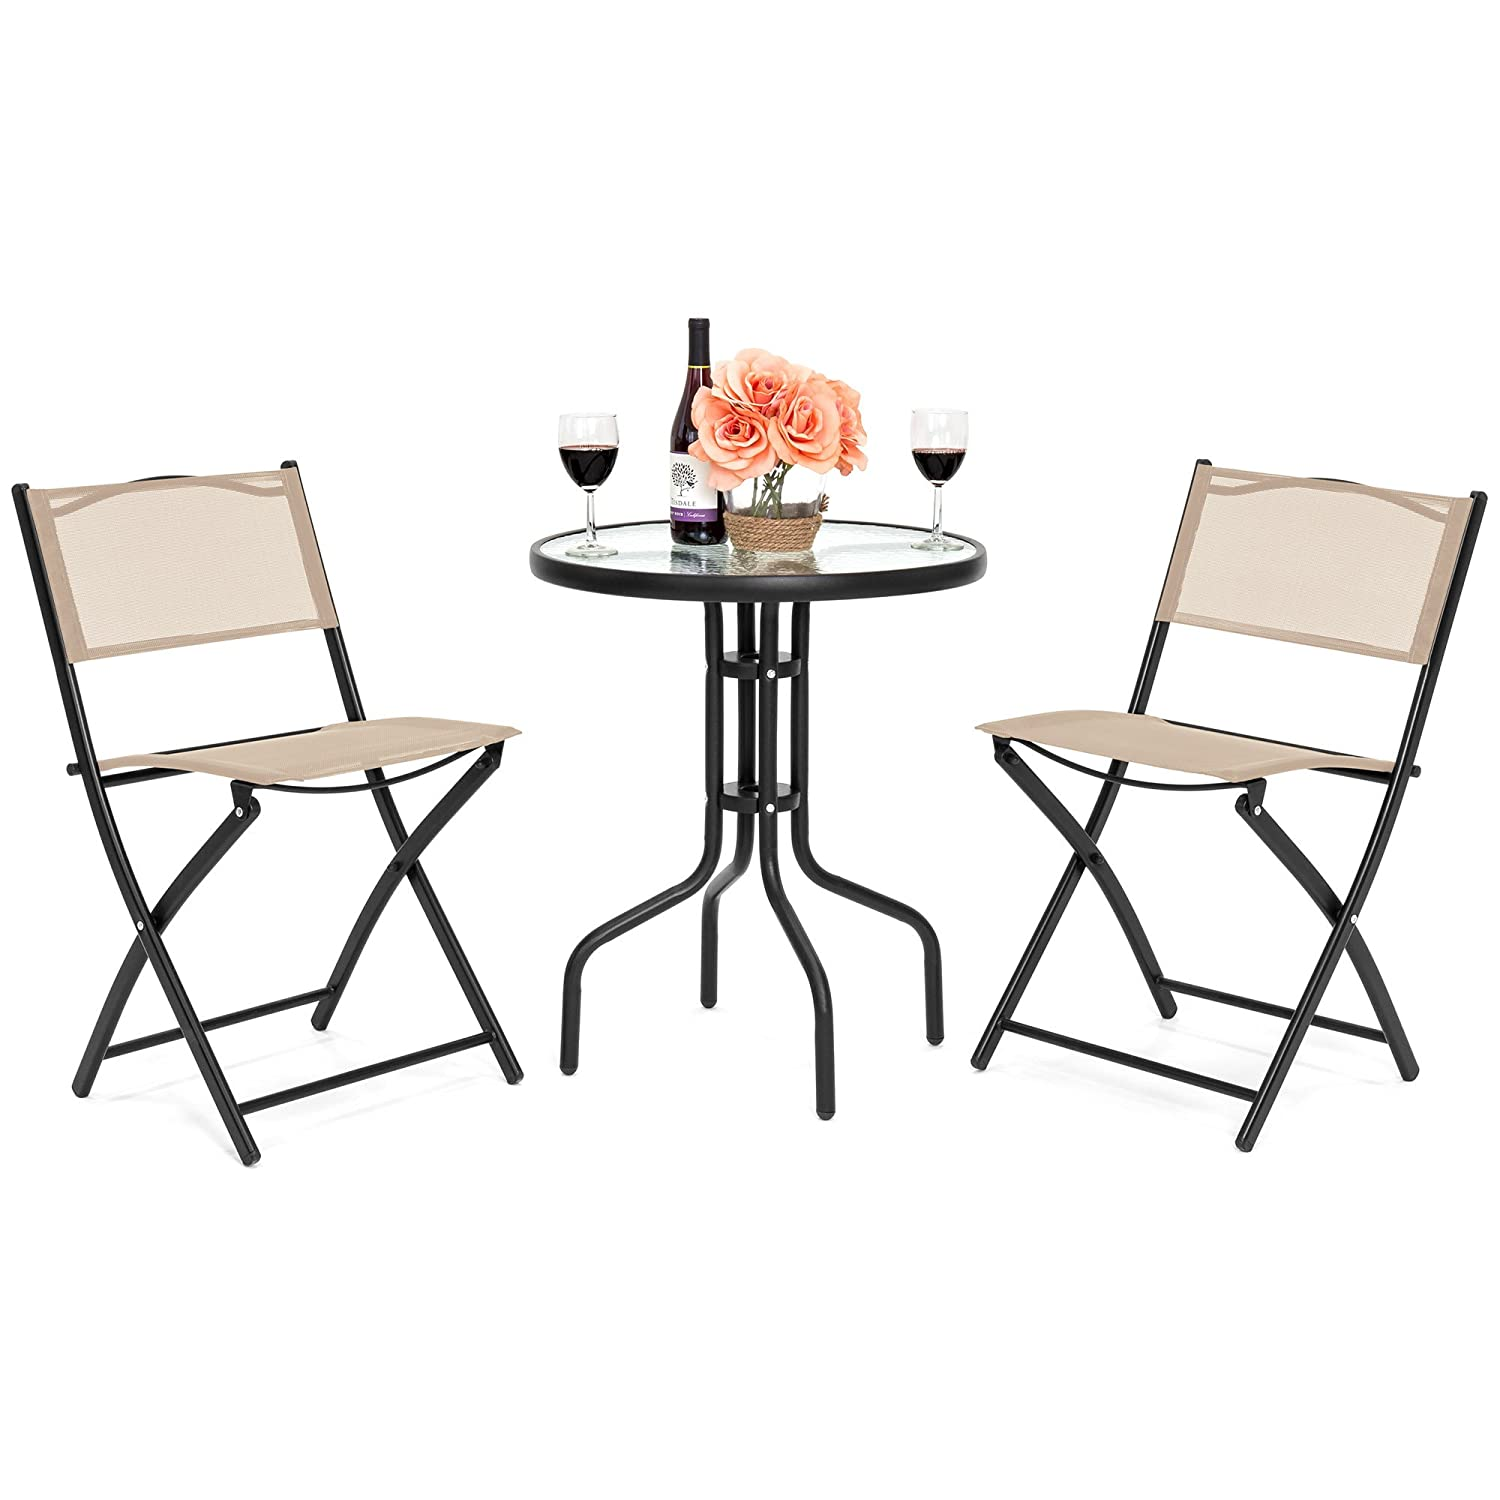 Best Choice Products 3-Piece Patio Bistro Dining Furniture Set w/Round Textured Glass Table Top, 2 Foldable Chairs- Gray SKY4756